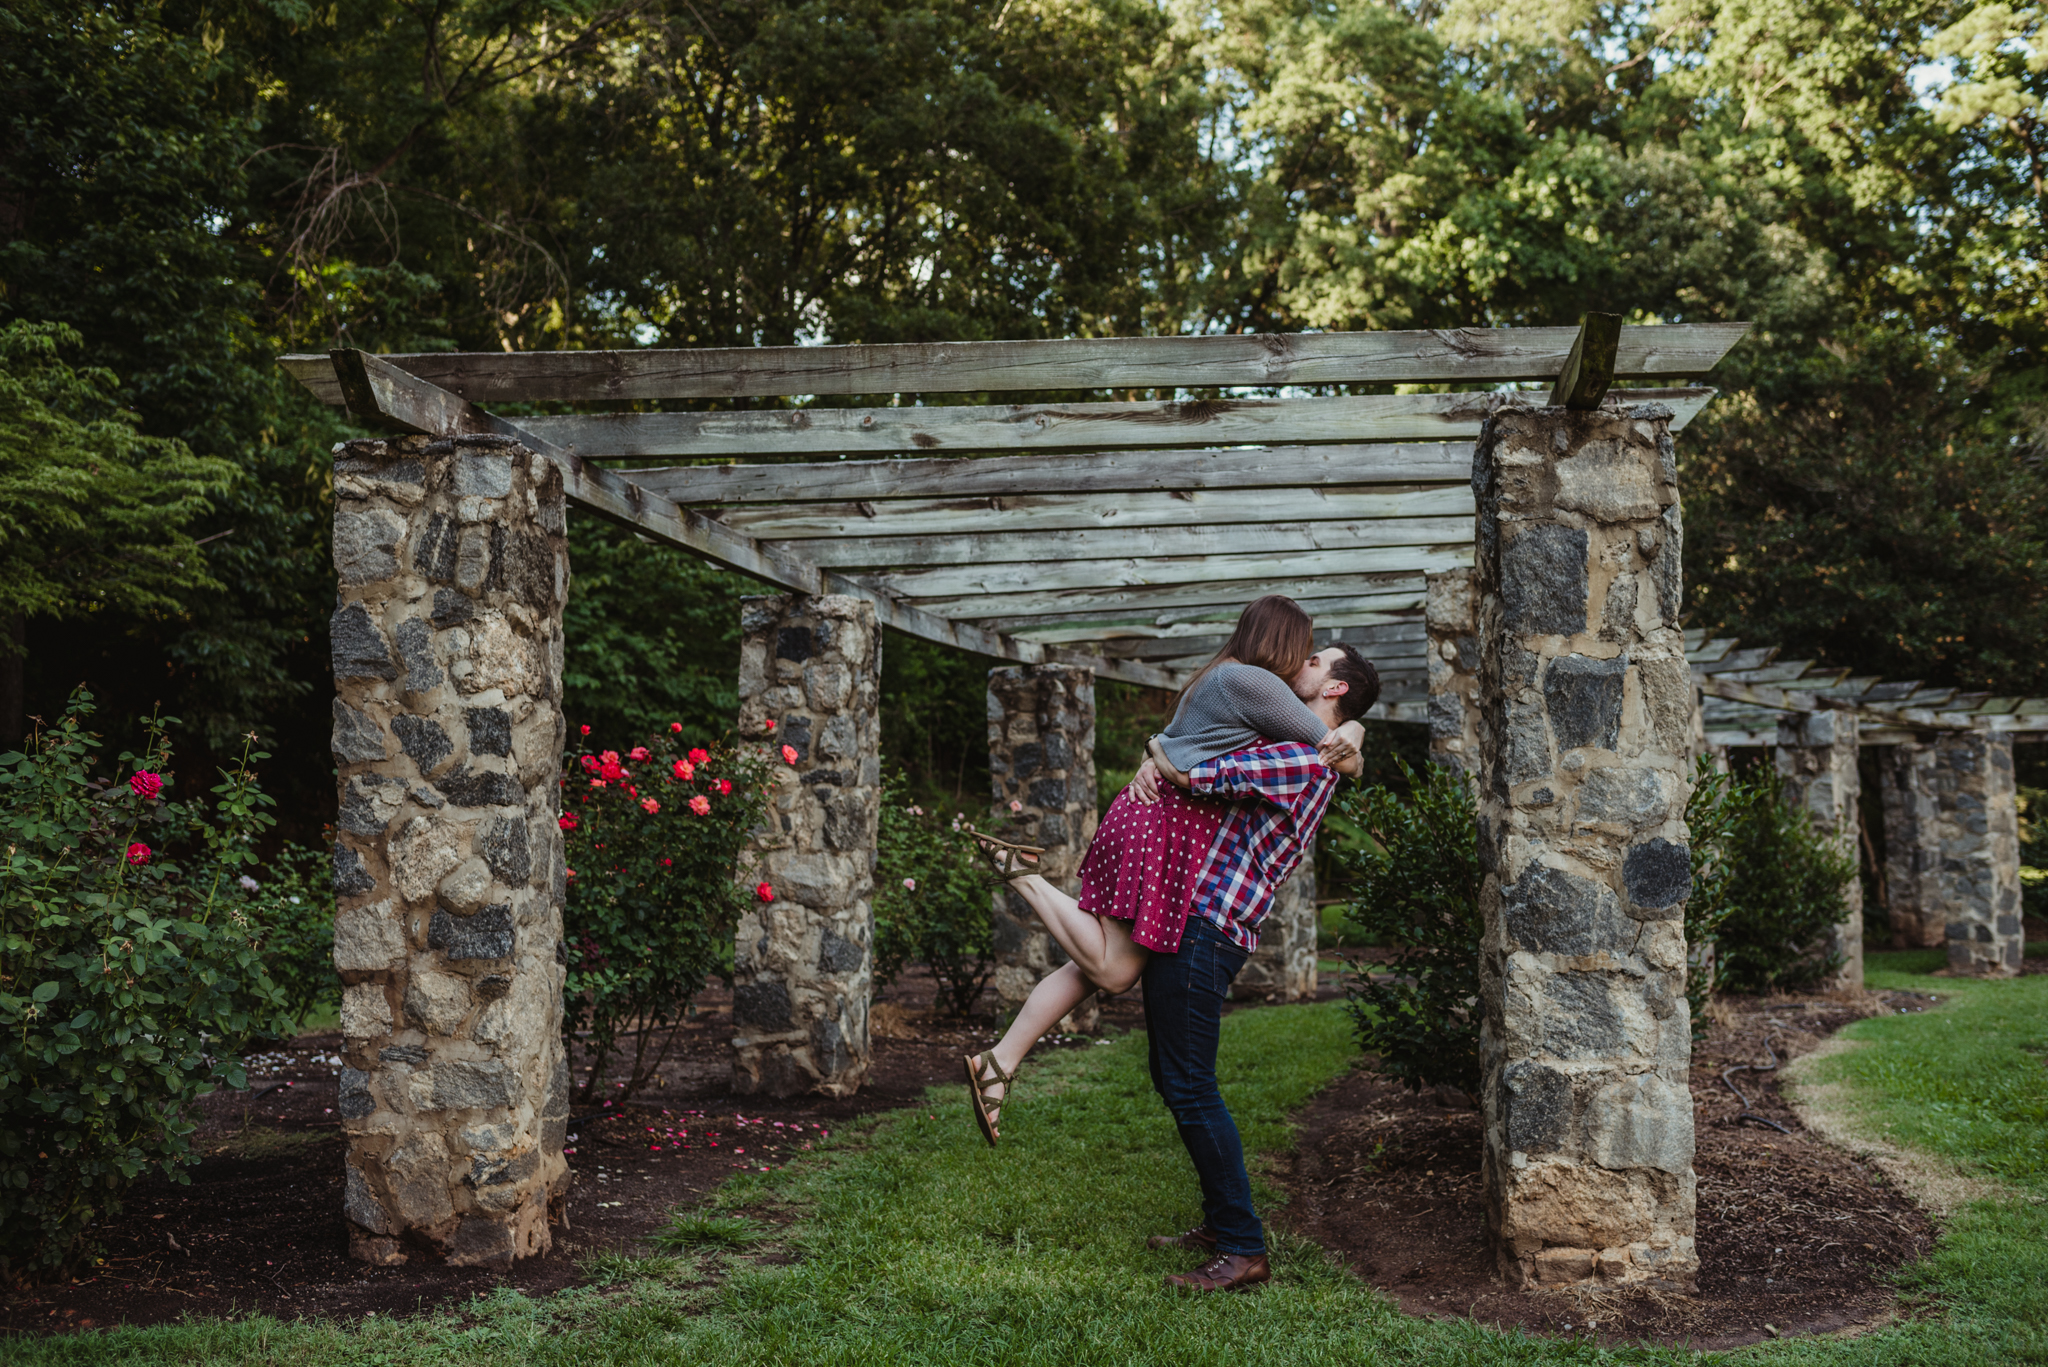 The groom picks up his bride to be under the trellis while at the Raleigh Rose Garden during their engagement session with Rose Trail Images.